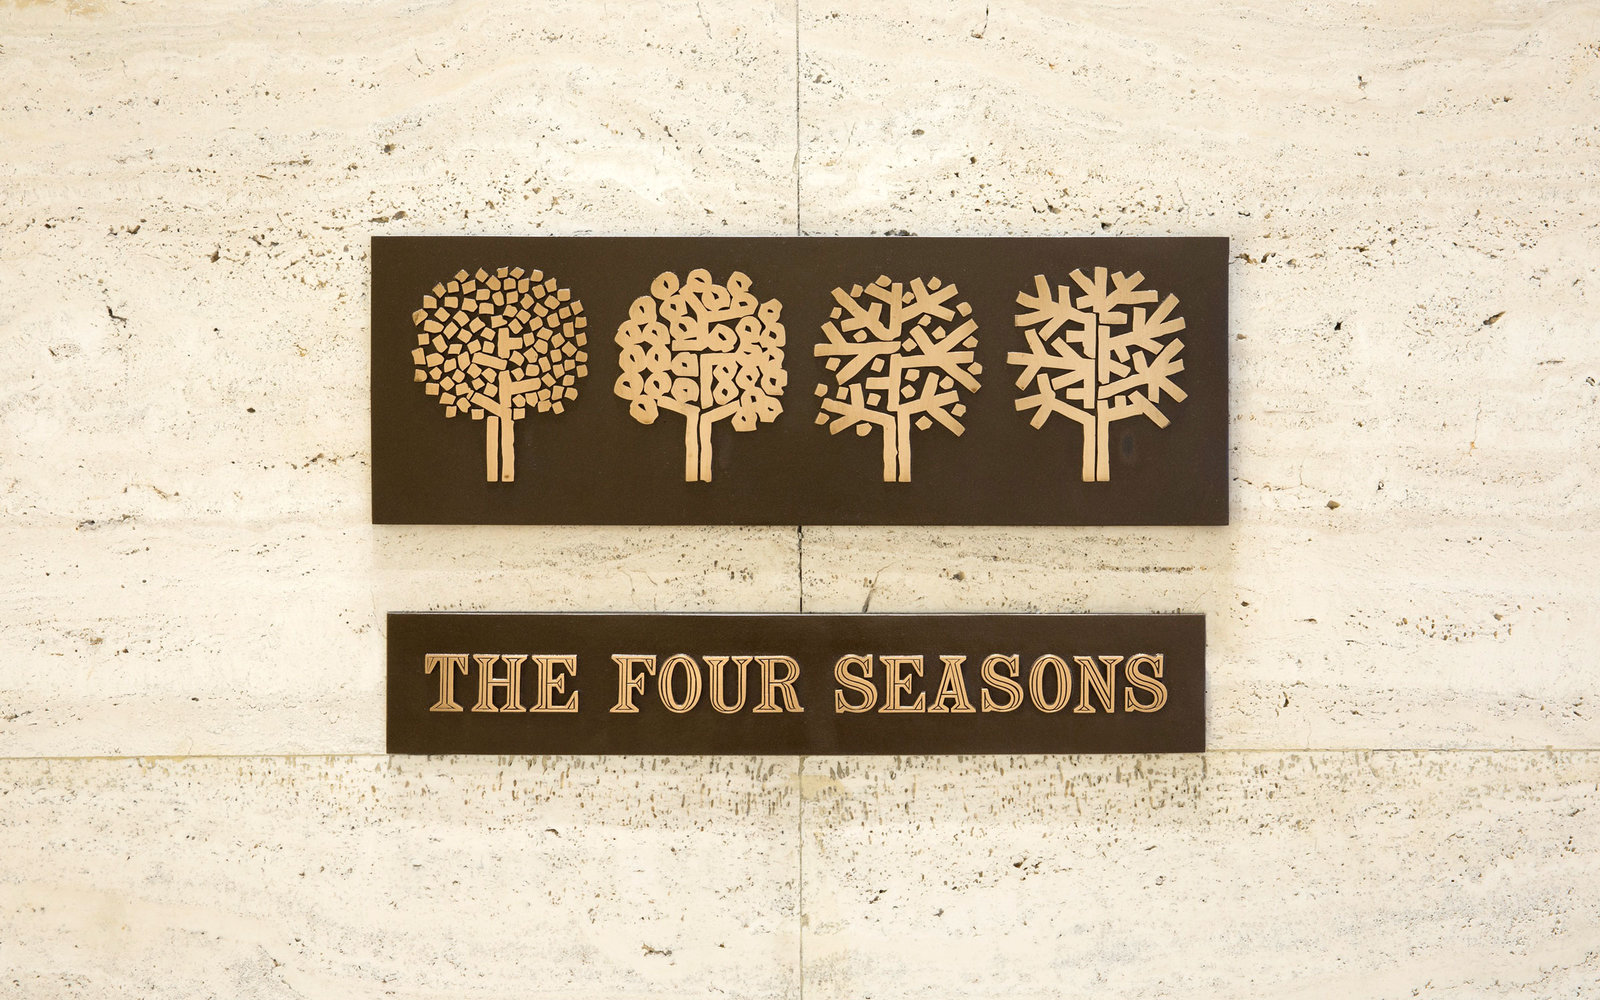 Four Seasons New York Auction